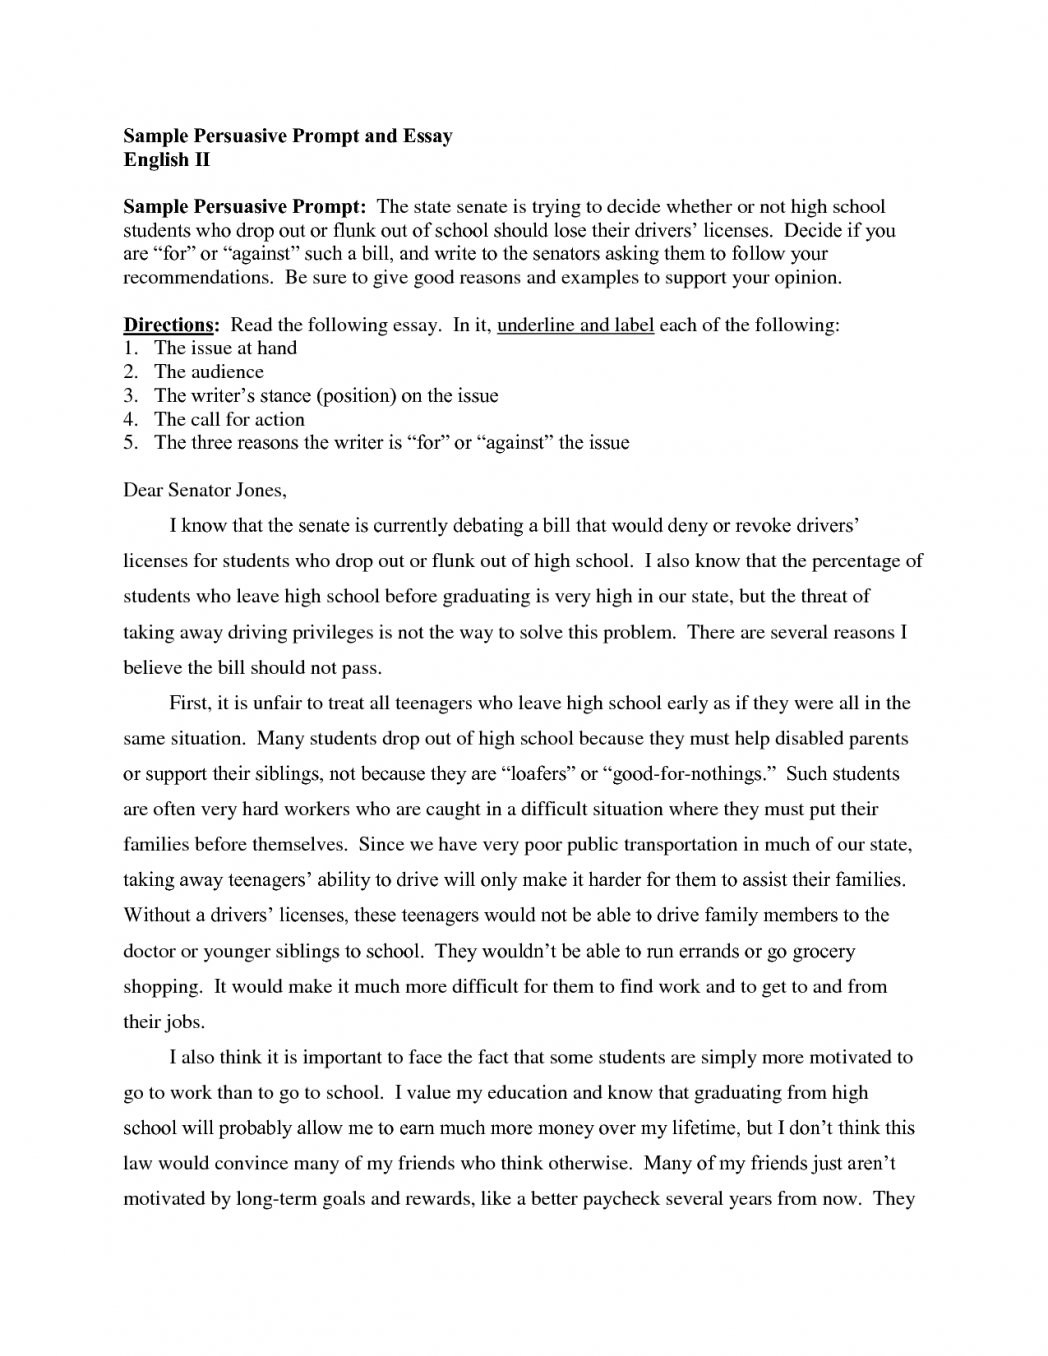 027 Essay Examplets High School Students College Paper Academic Writing Argumentative Topics For Sample Examples Of Persuasive Essays Pictur Funny Creative 1048x1356 Rare Prompts 7th Graders Pdf Full